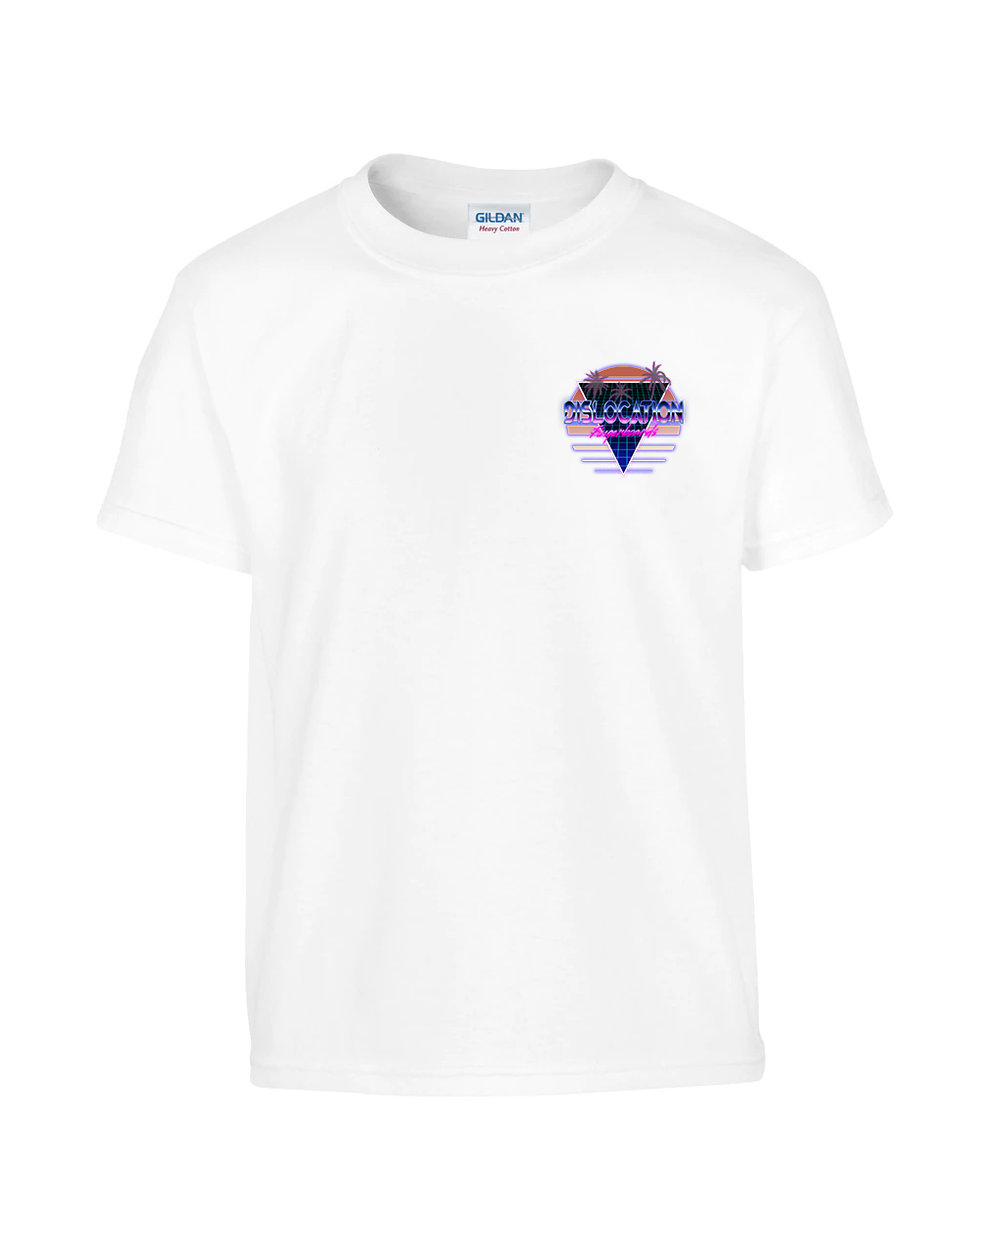 Image of Dislocation T-Shirts